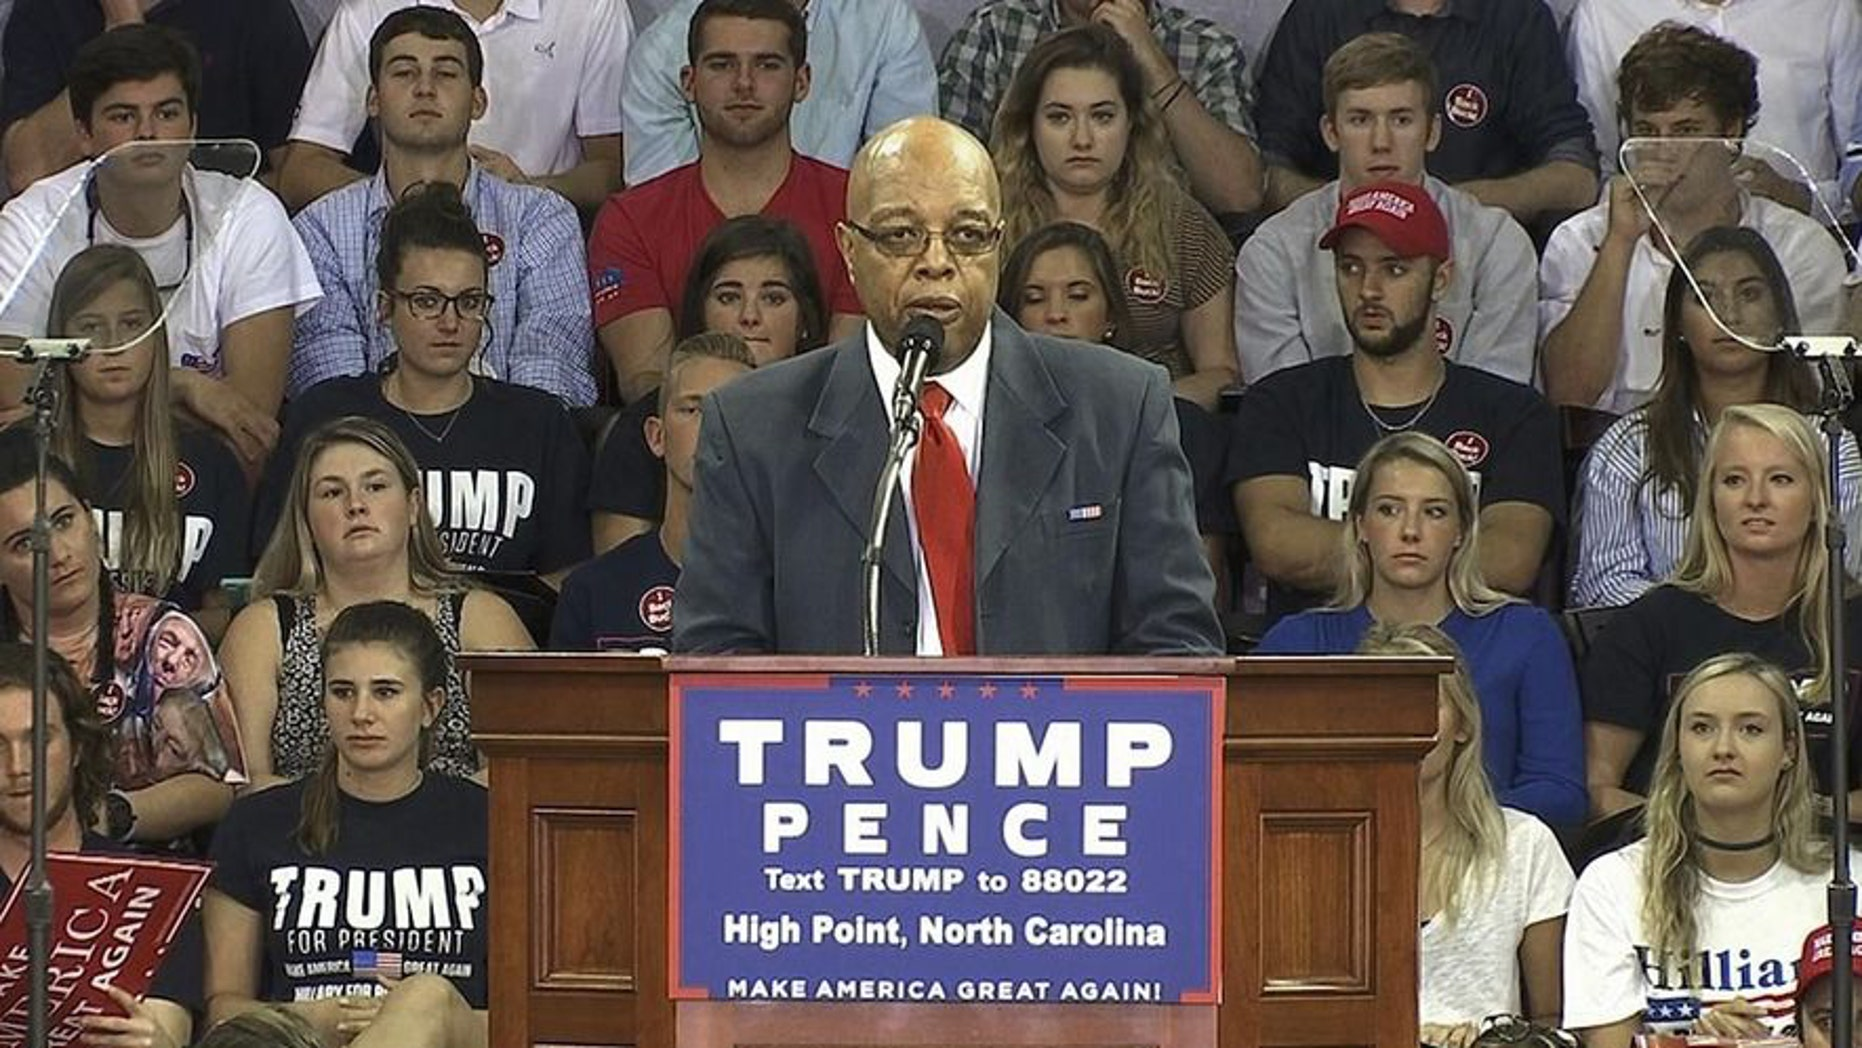 FILE -- In this Tuesday, Sept. 20, 2016, image made from video, Clarence Henderson, a participant in the Feb. 1, 1960, sit-in at a Greensboro, N.C., Woolworth lunch counter, speaks at a campaign event in High Point, N.C., in support of Republican presidential candidate Donald Trump.